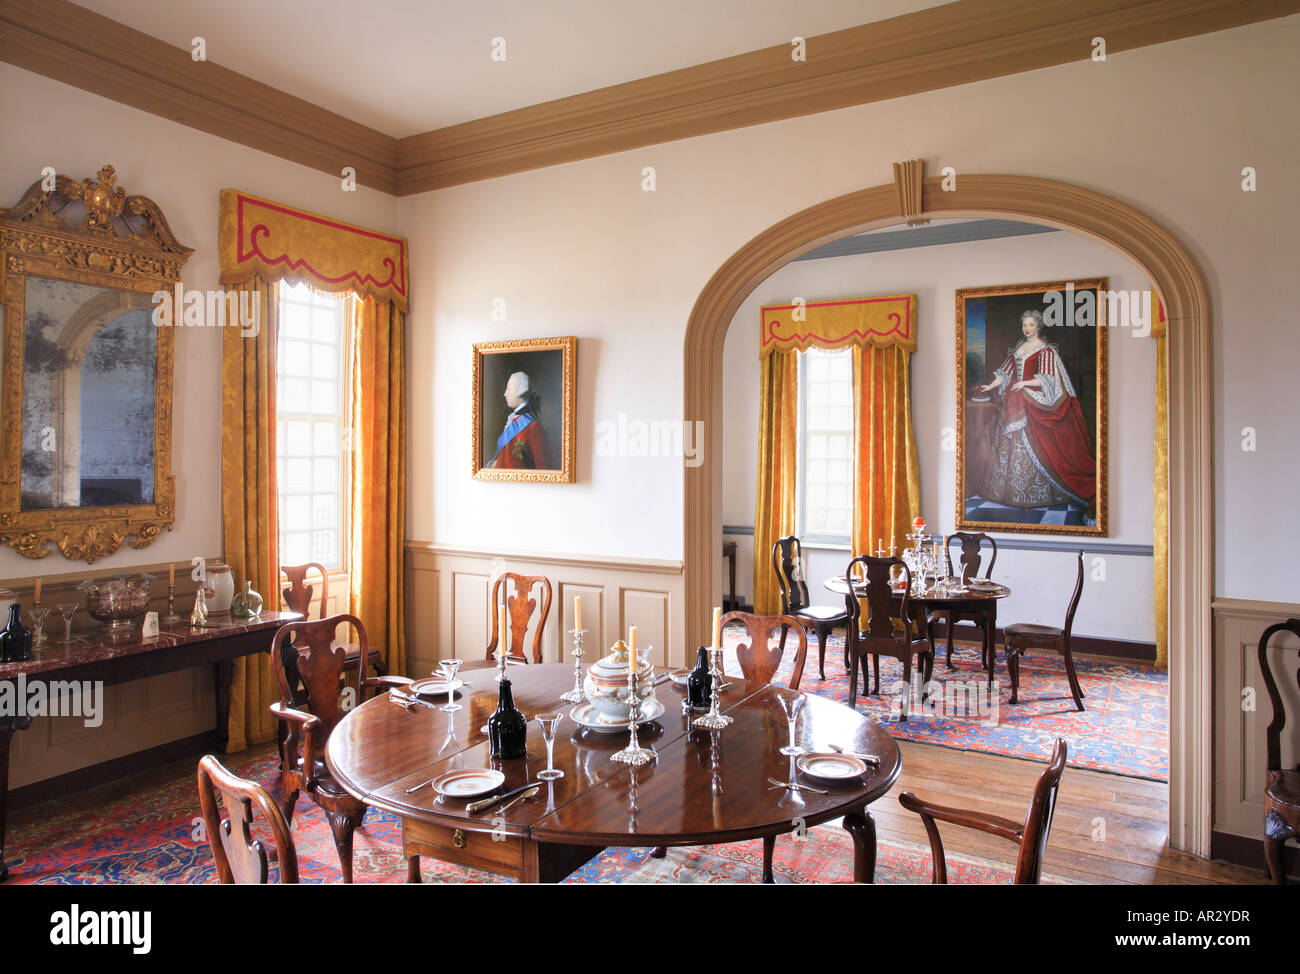 Dining Room At Birthplace Of Robert E. Lee   Stratford Hall, Westmoreland  County, Virginia, USA